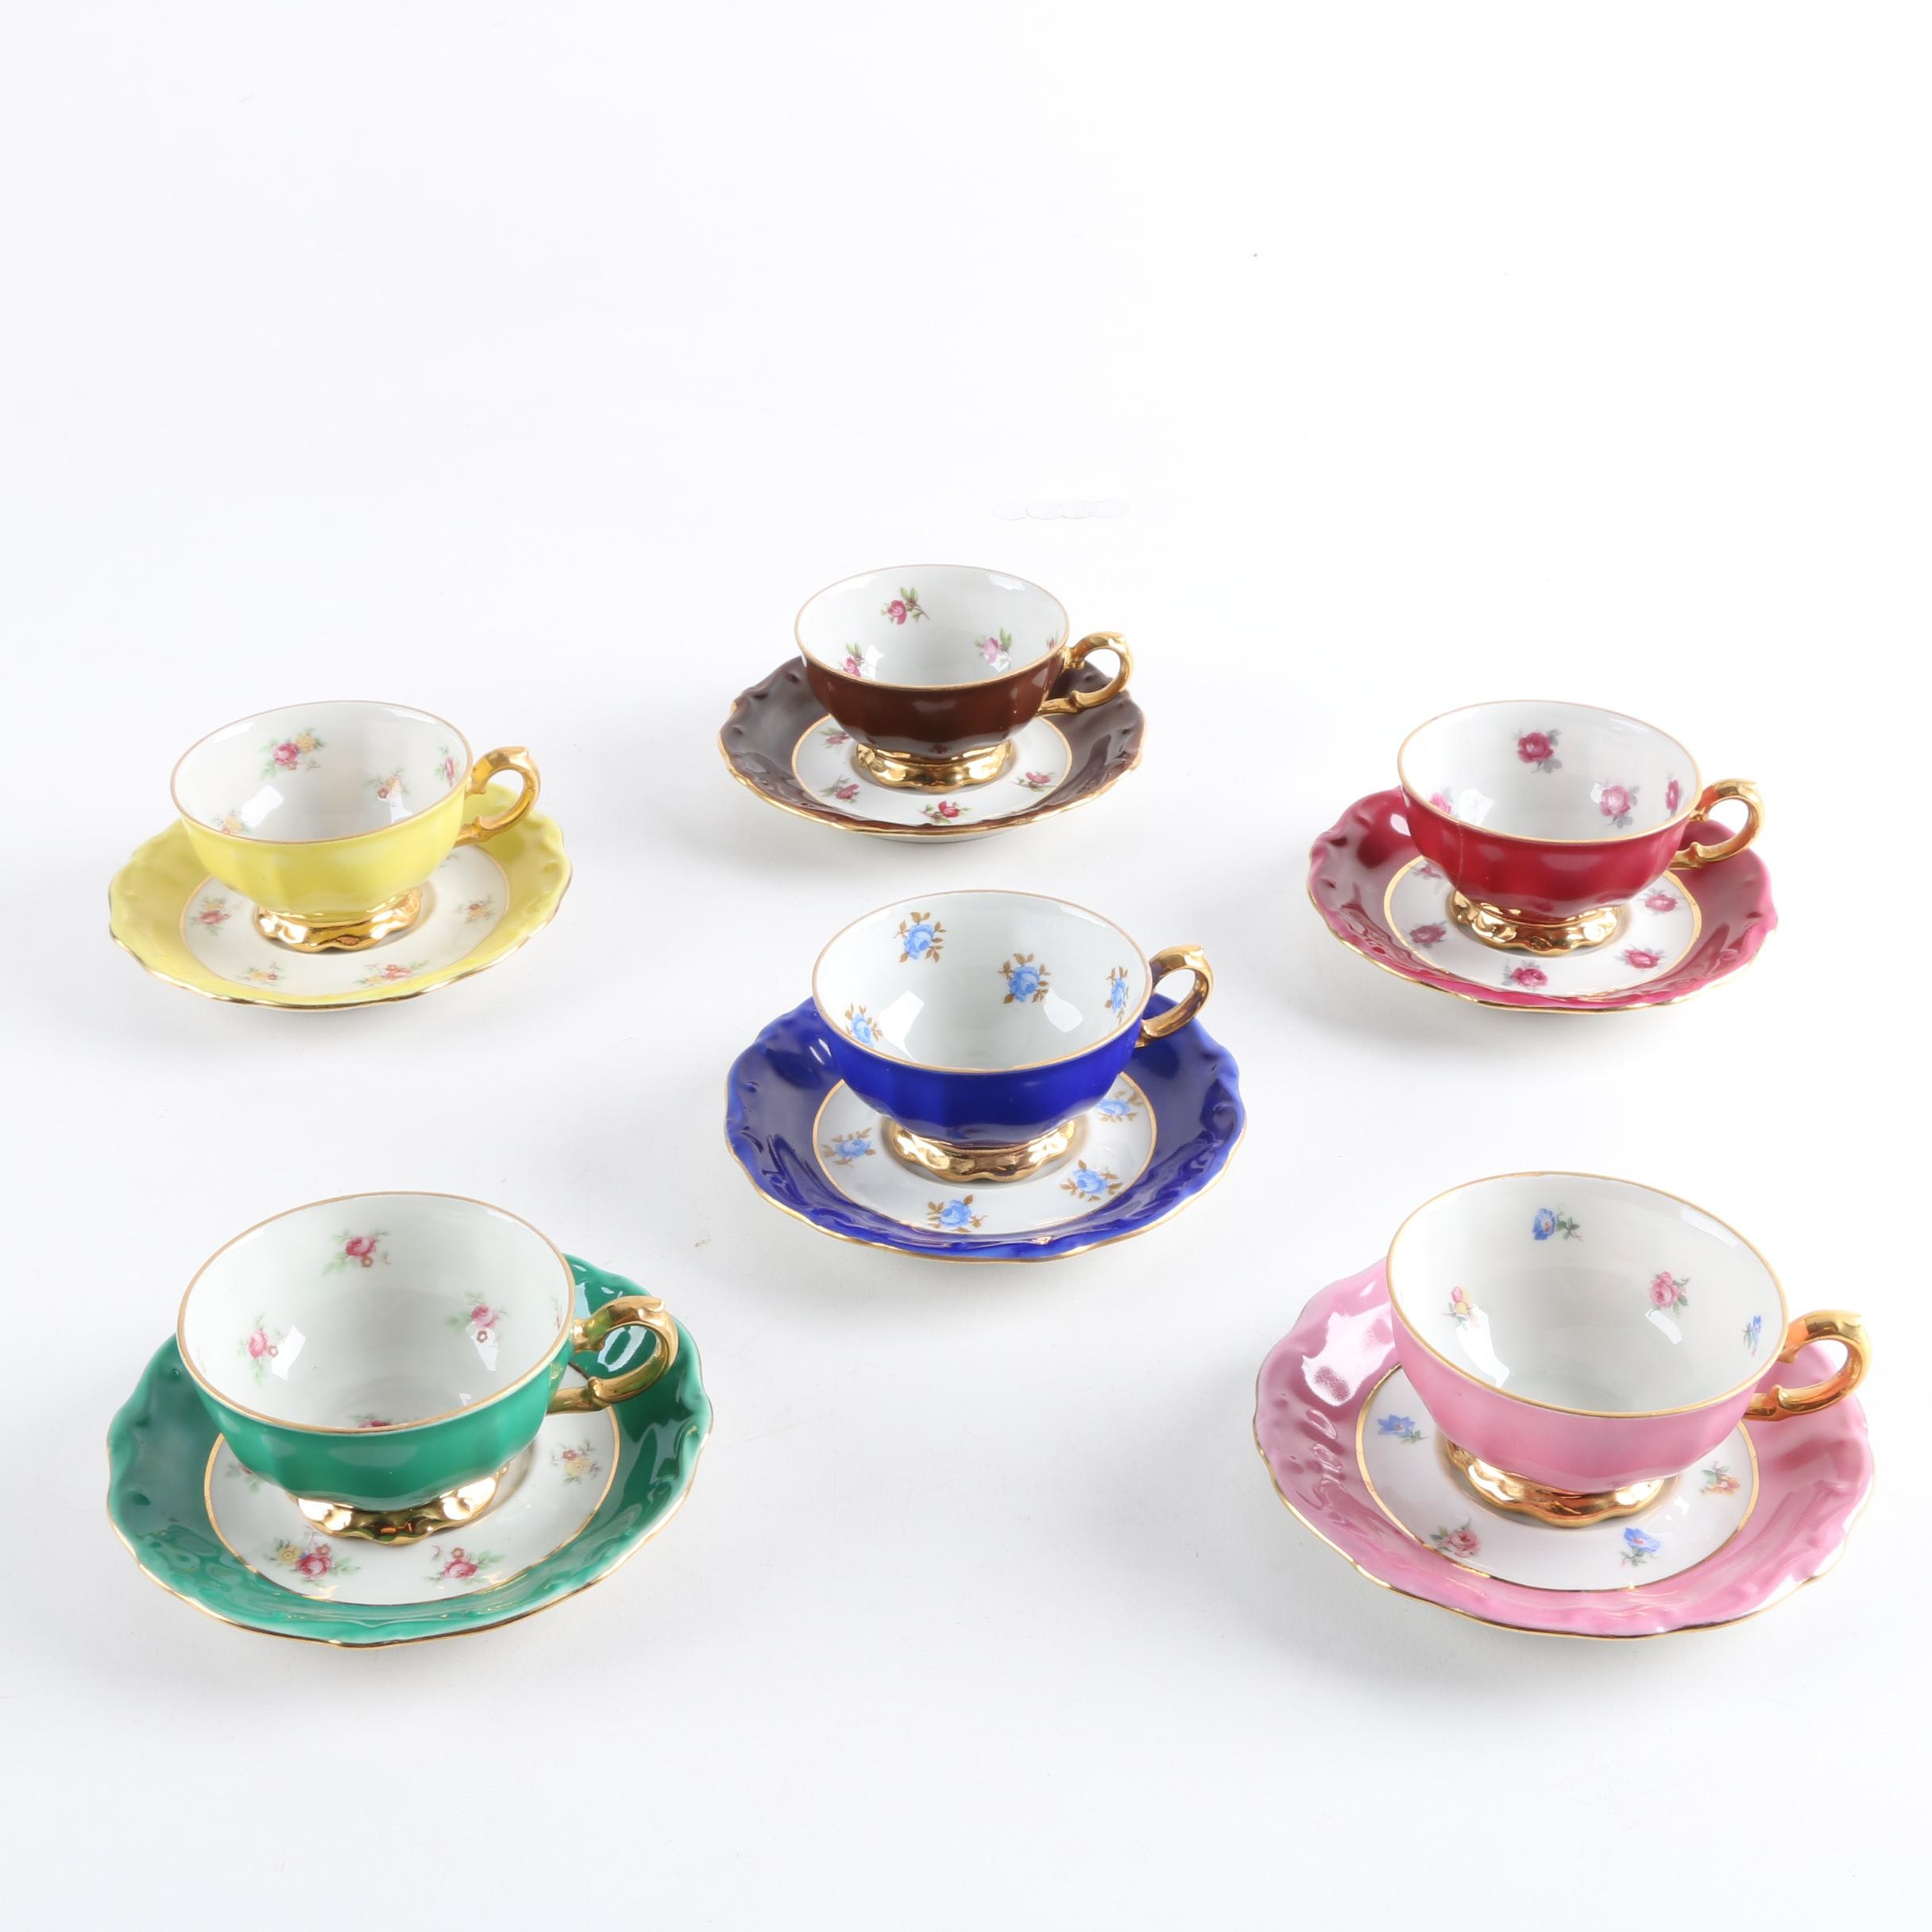 Vintage Bareuther Porcelain Teacups and Saucers